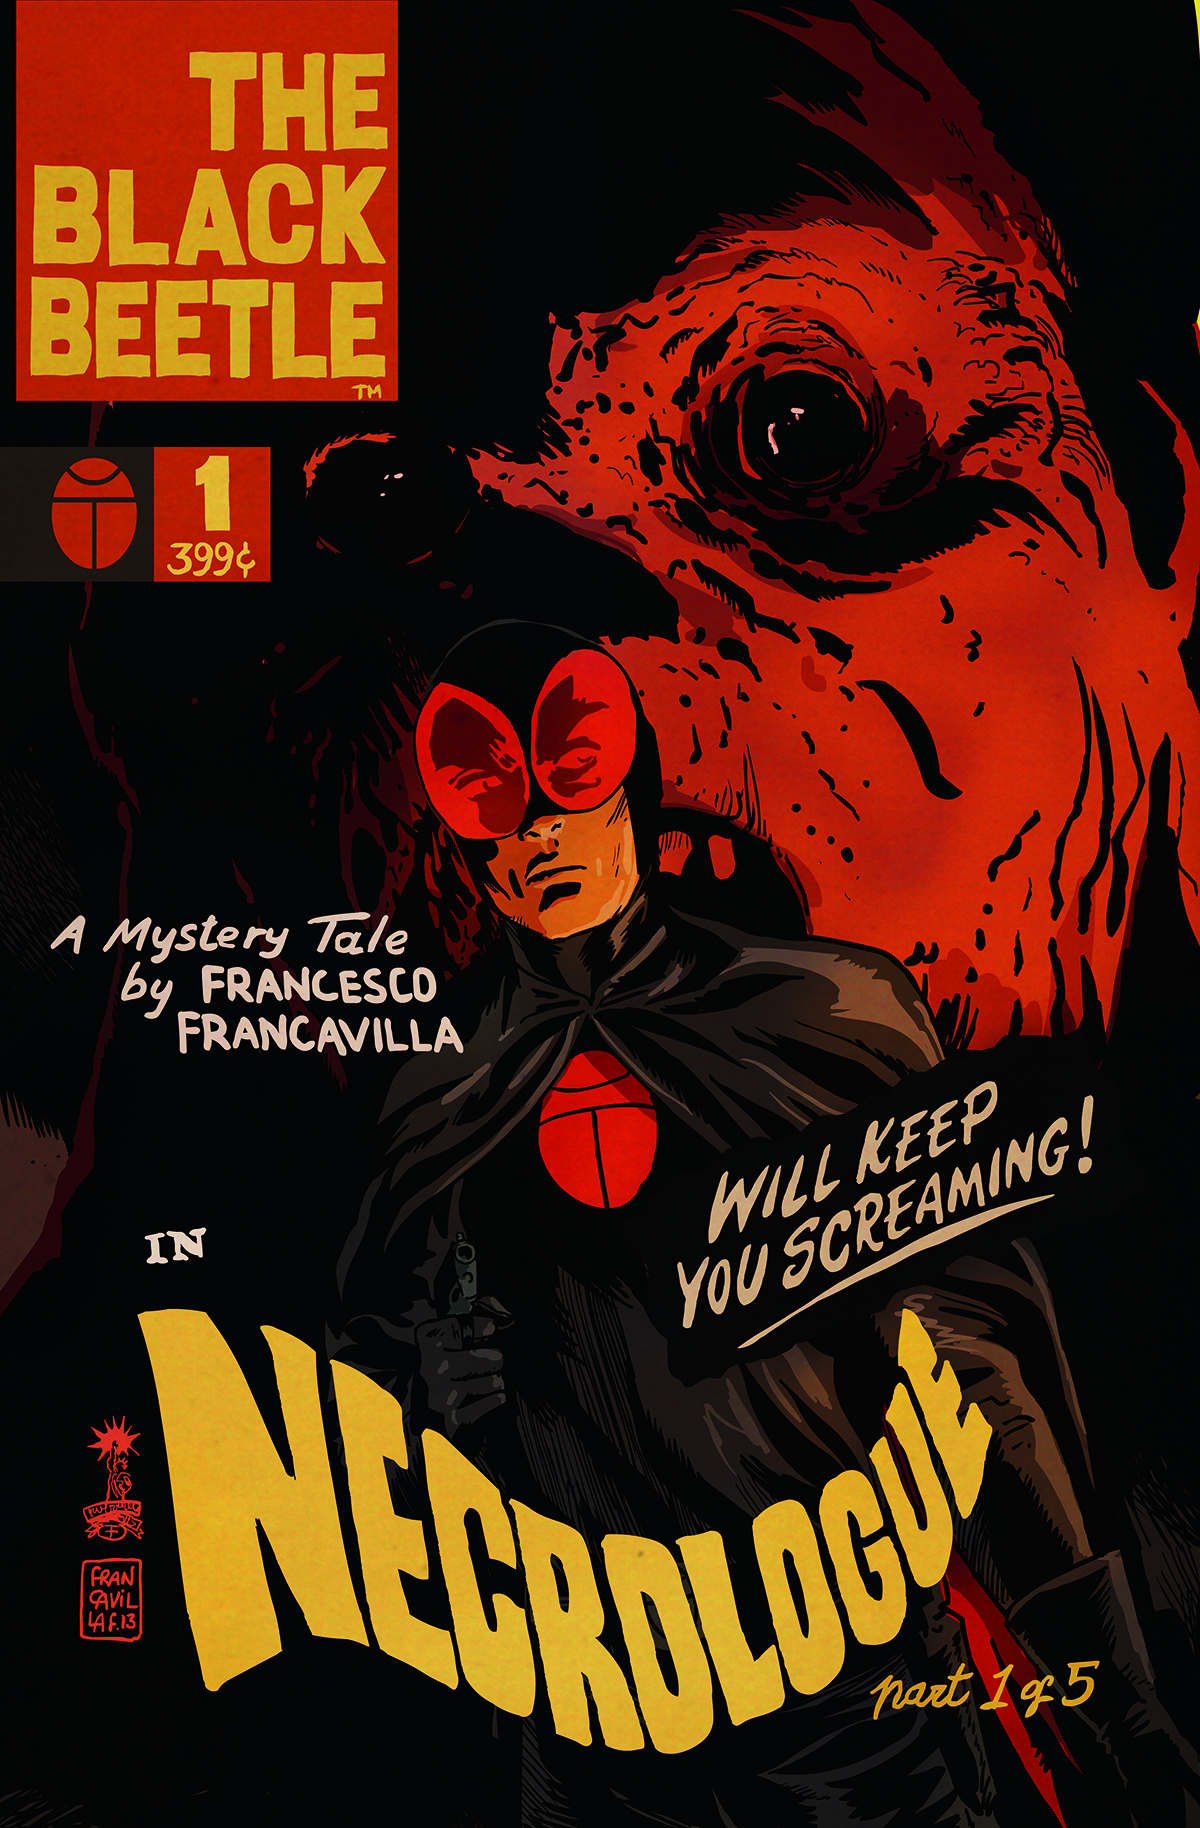 BLACK BEETLE NECROLOGUE #1